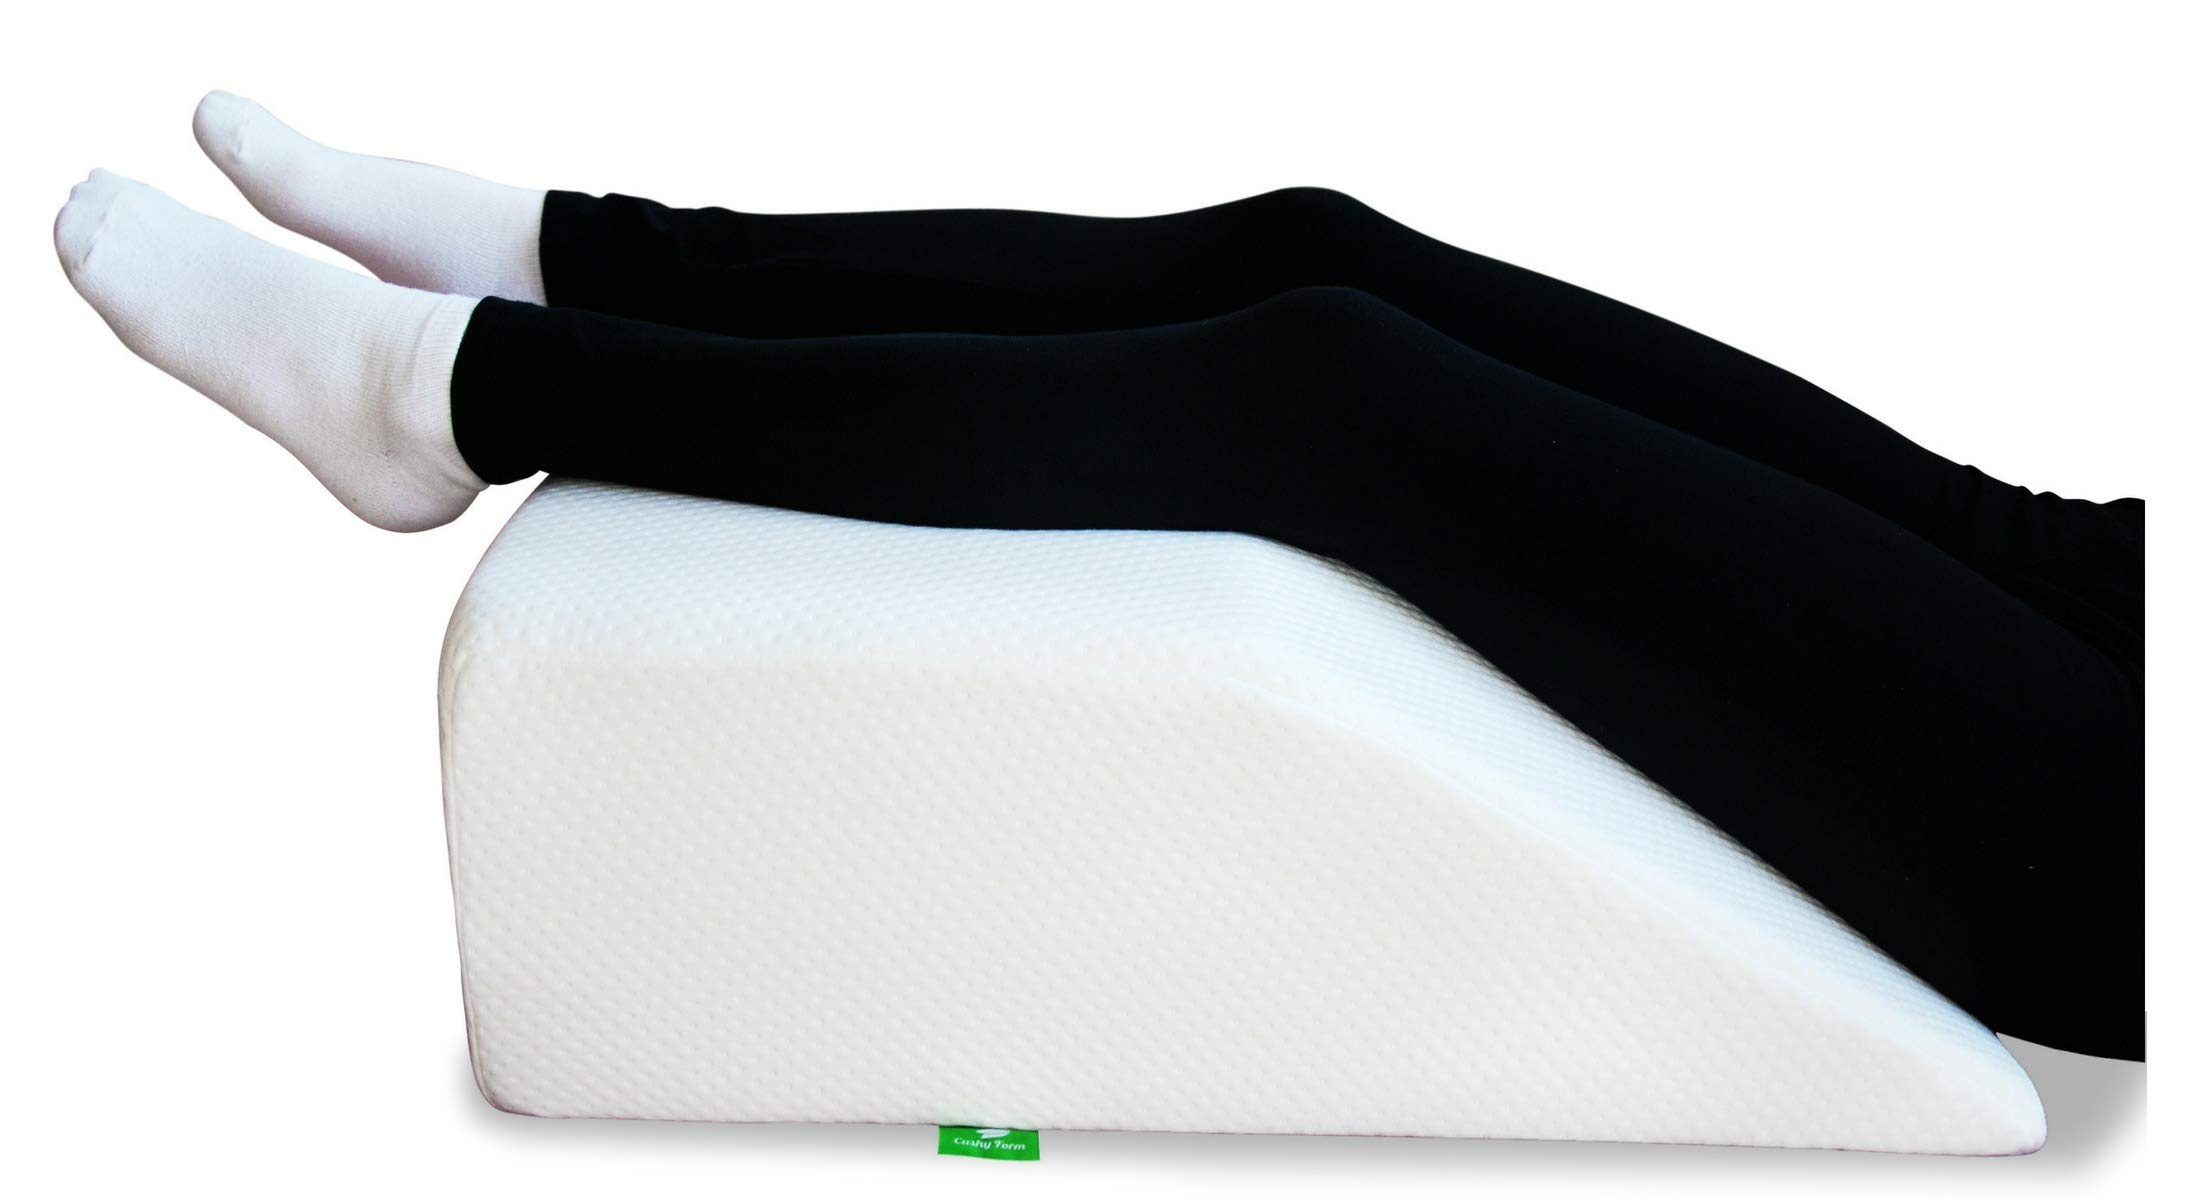 Post Surgery Elevating Leg Rest Pillow with Memory Foam Top - Best for Back, Hip and Knee Pain Relief, Foot and Ankle Injury and Recovery Wedge - Breathable and Washable Cover (8 Inch Elevator, White) by Cushy Form